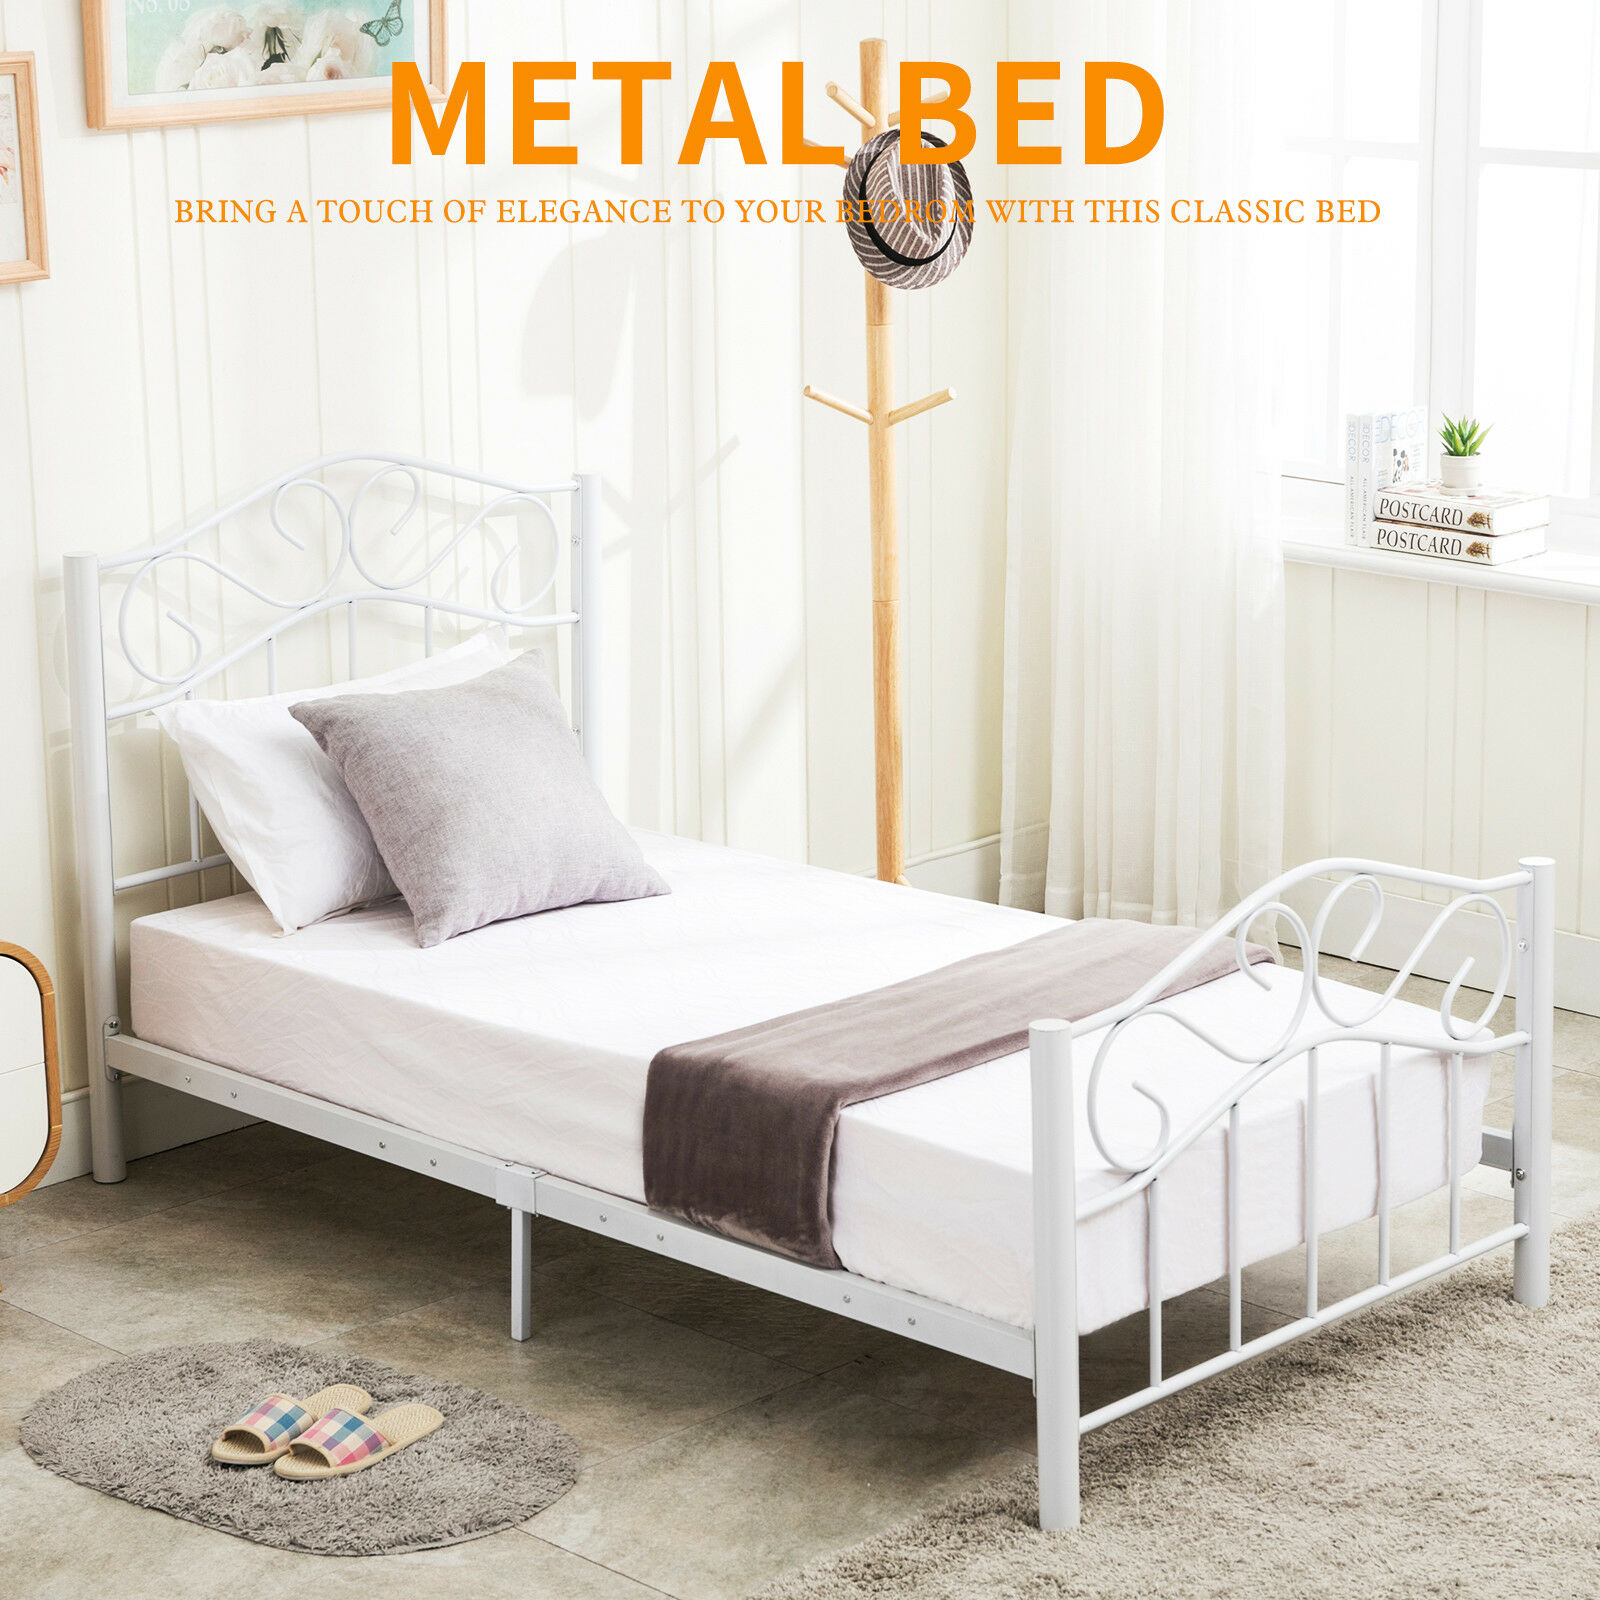 Metal Bed Headboards Details About Twin Size Heavy Duty Metal Bed Frame Headboard Footboard Bedroom Furniture White